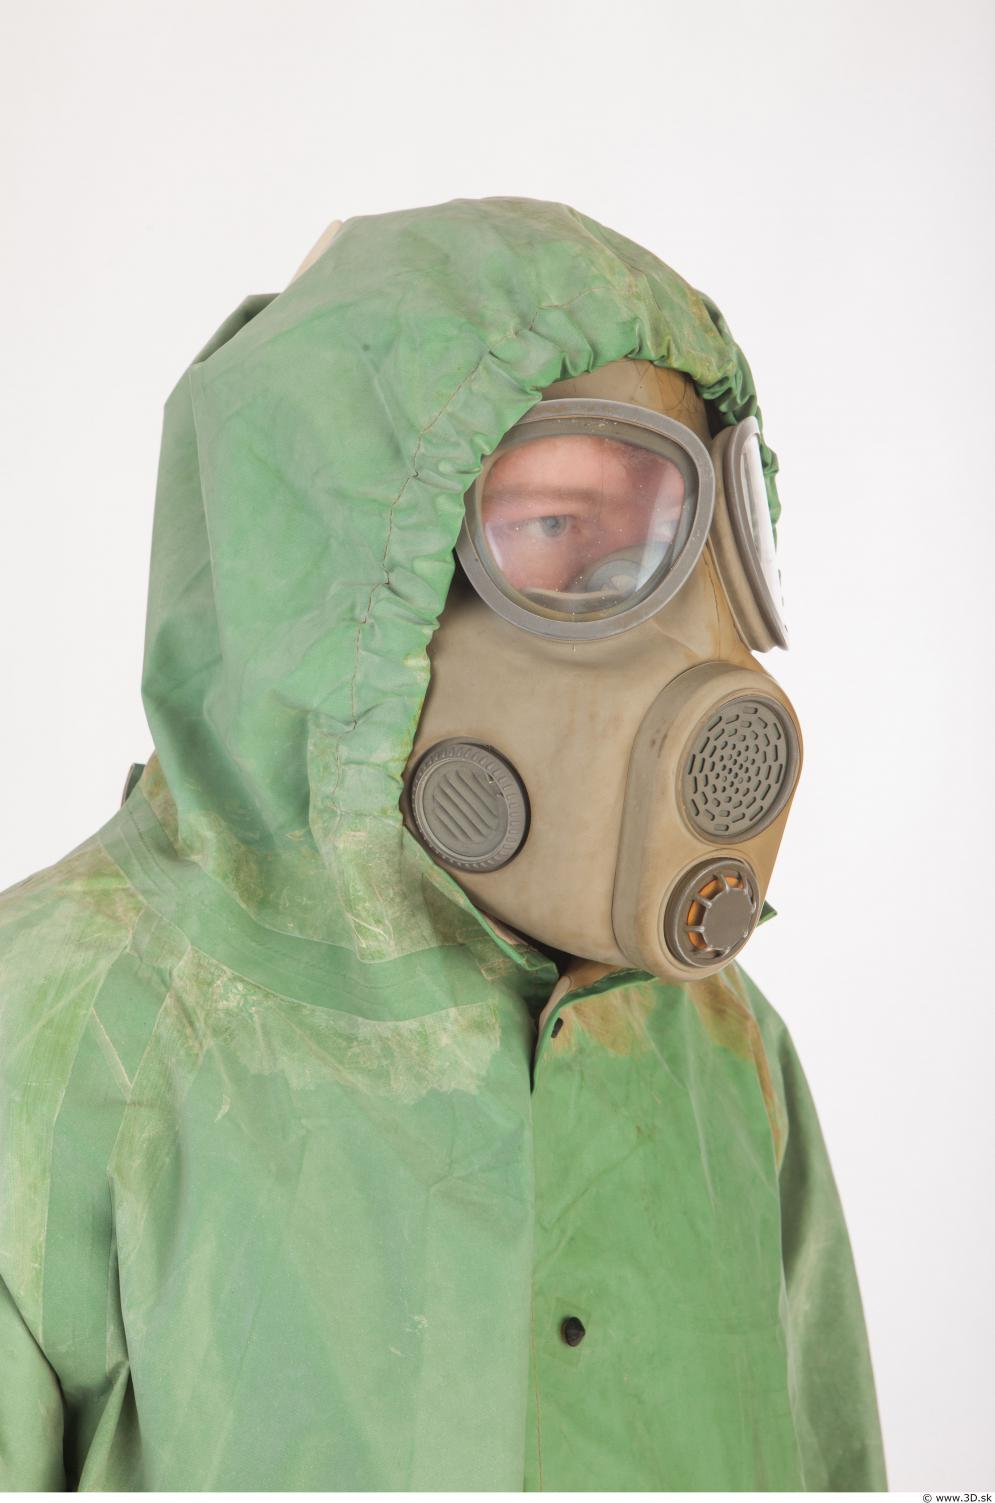 Image from Free Samples / May 2018 - 0059_nuclear_protective_cloth_0059.jpg